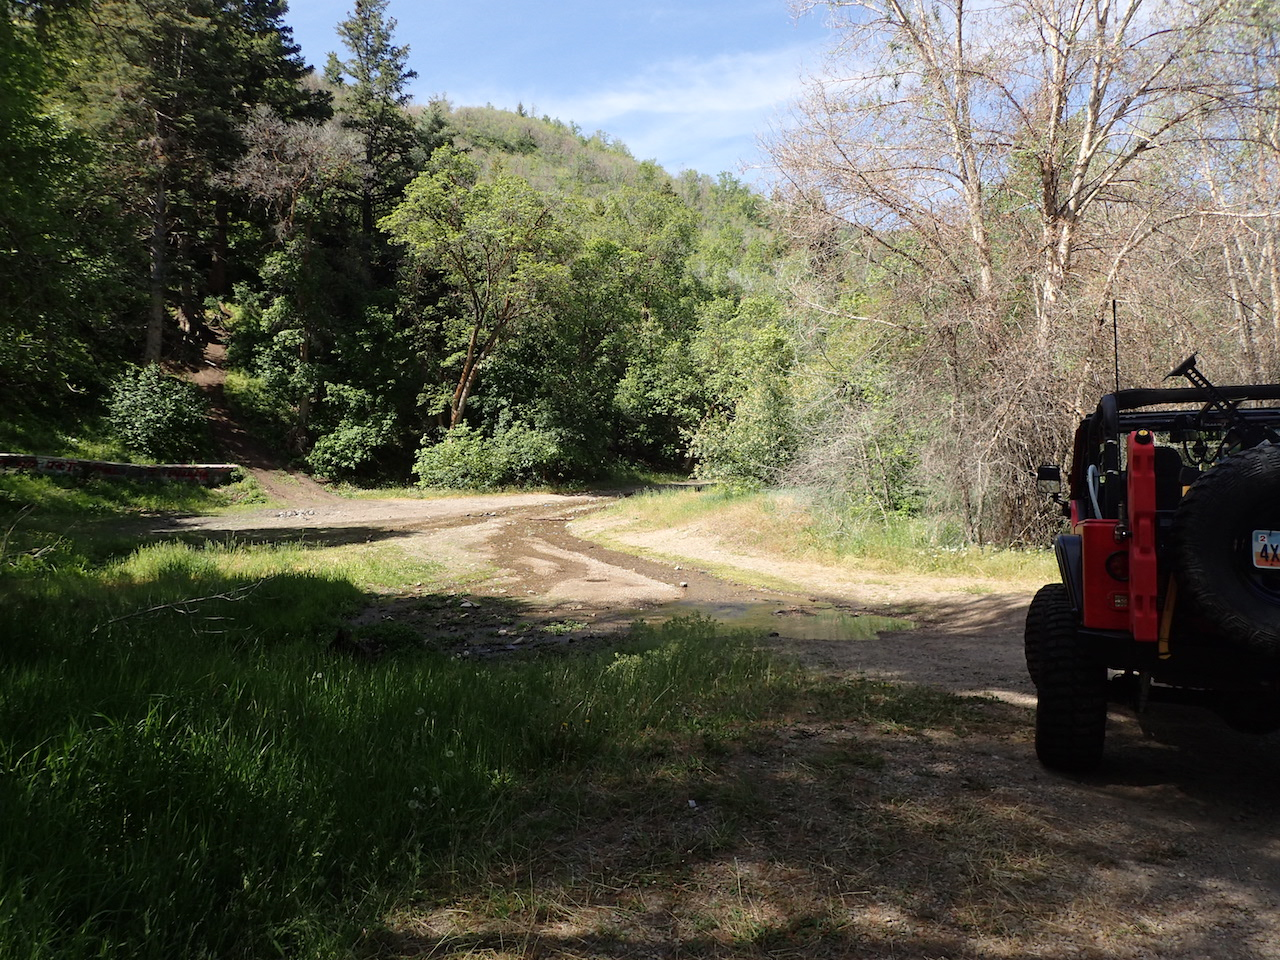 Butterfield Canyon - Waypoint 3: Seasonal Stream Pullout